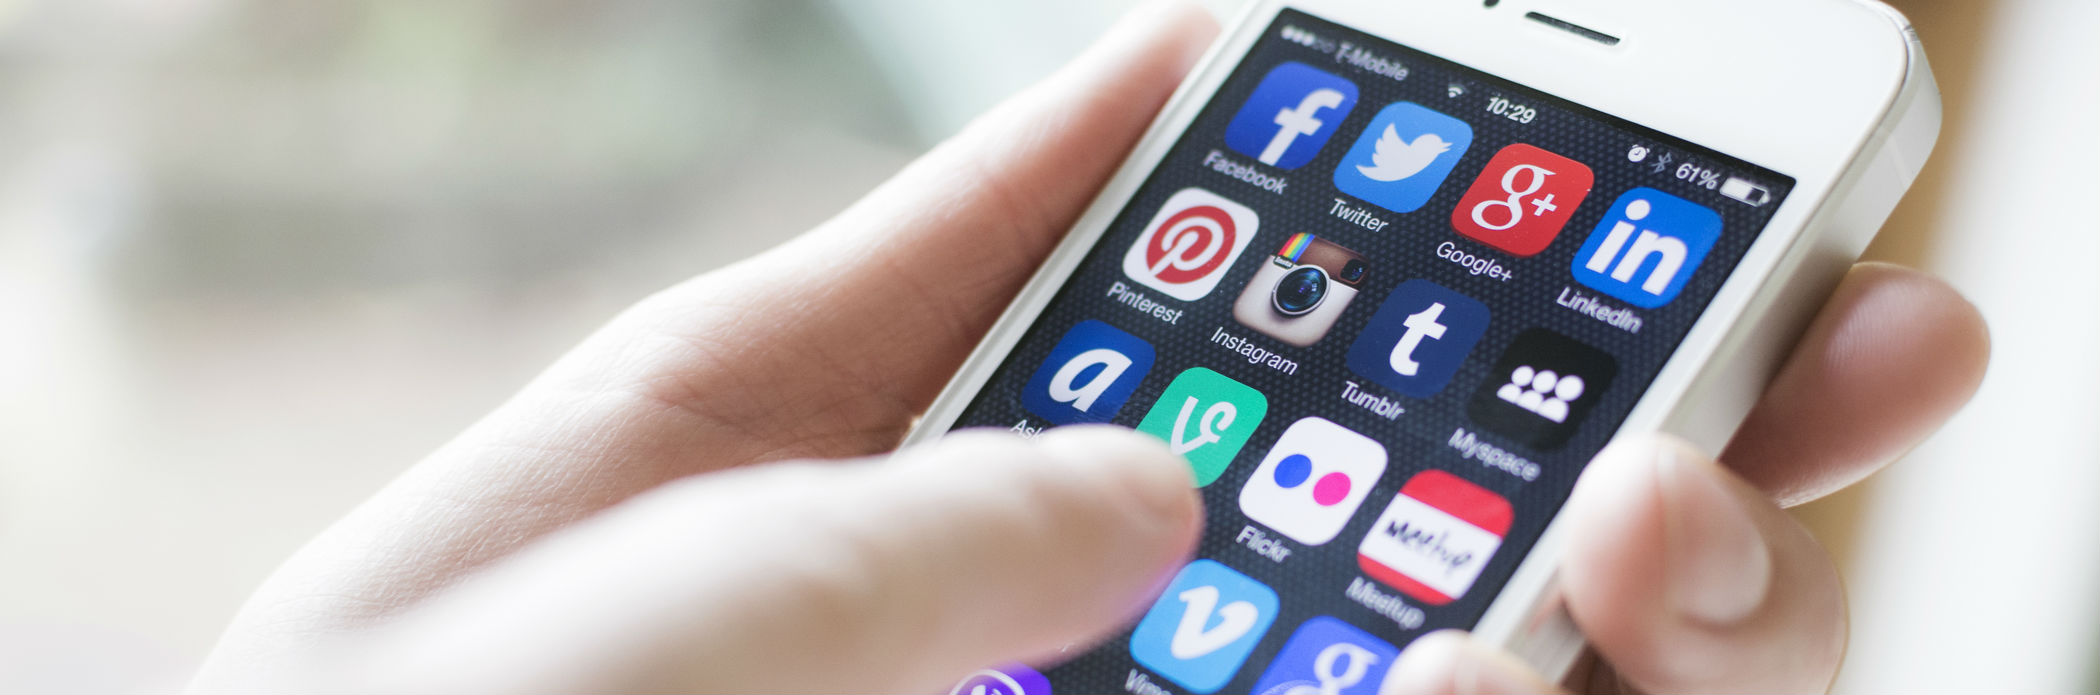 Social media can help businesses grow